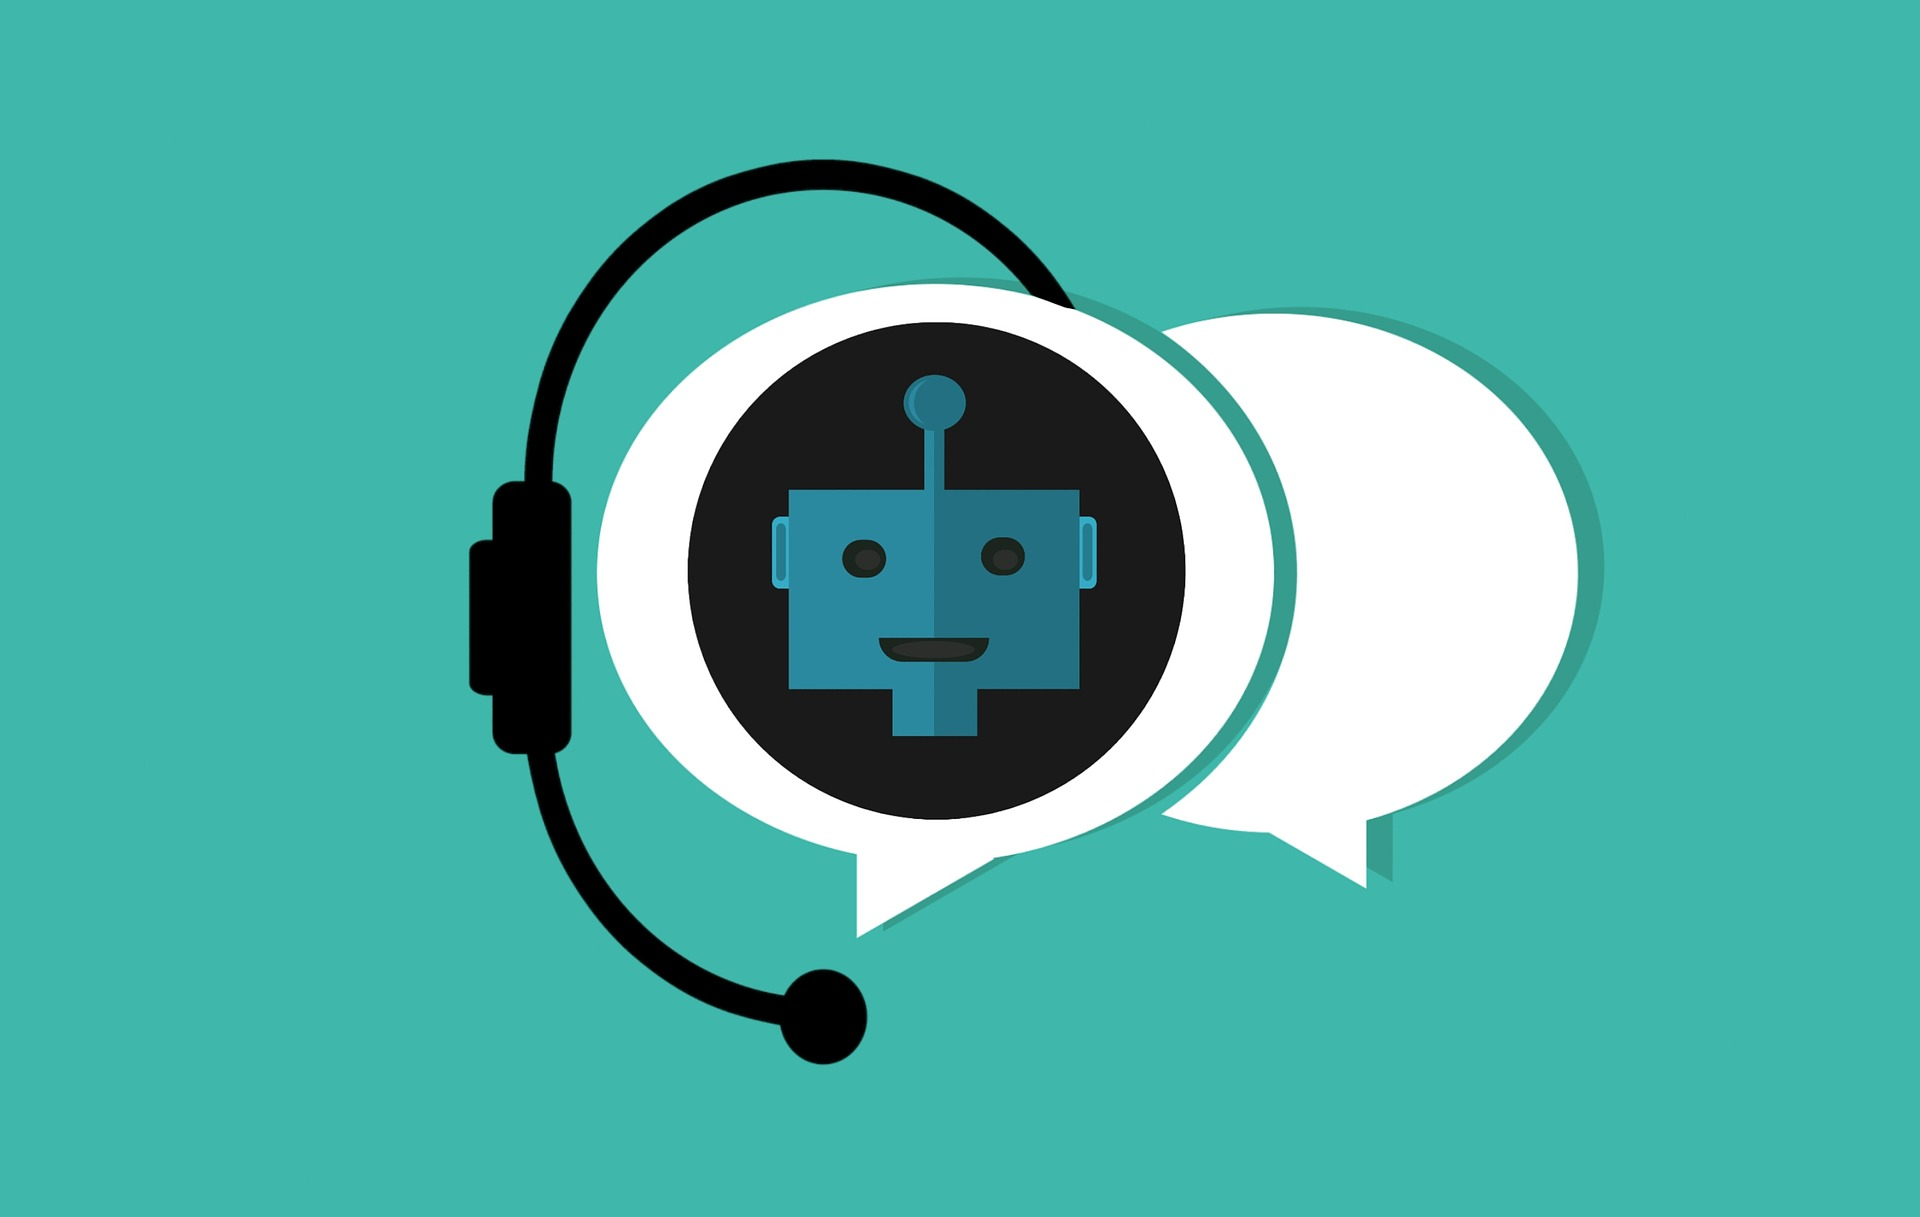 Businesses benefit from Chatbots